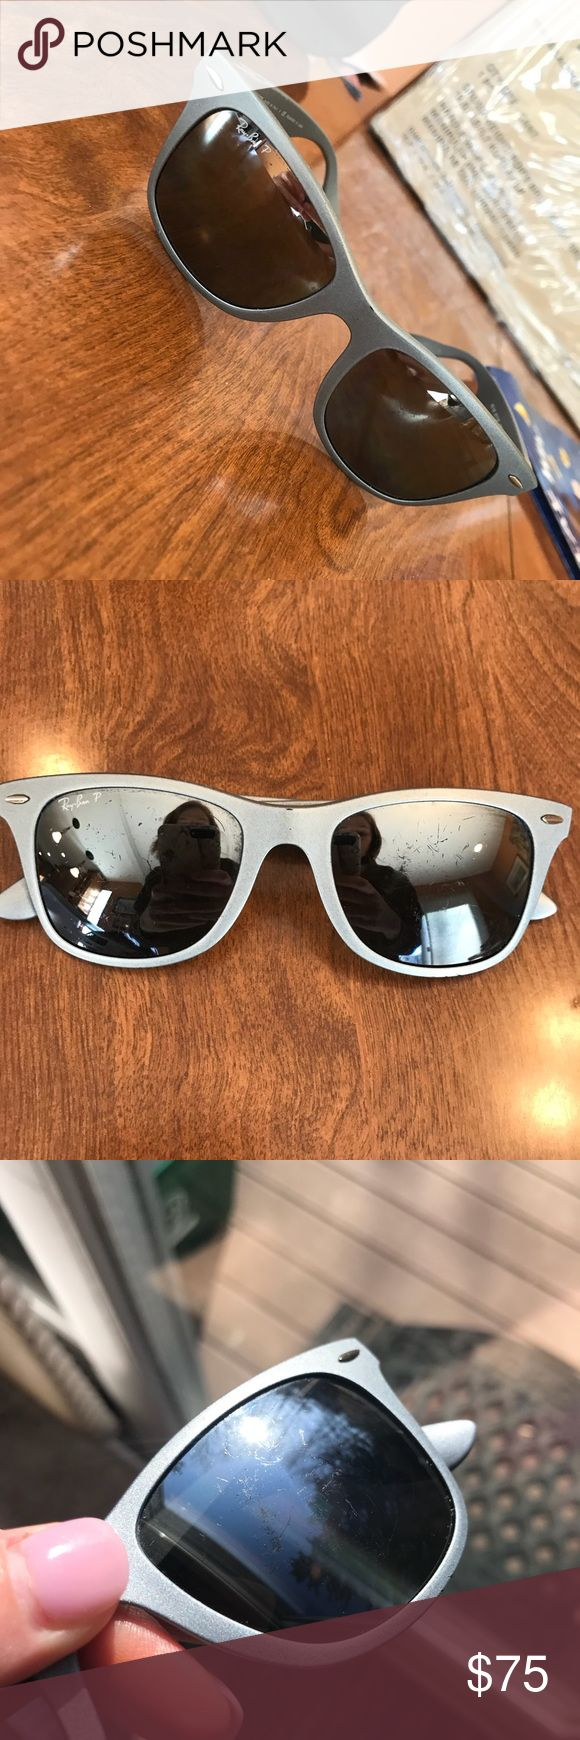 Ray-ban Wayfarer polarized authentic sunglasses Ray ban polarized sunglasses! Please notice scratches on lenses prior to purchasing still have lots of life left! Beautiful sunnies 😍 Ray-Ban Accessories Glasses